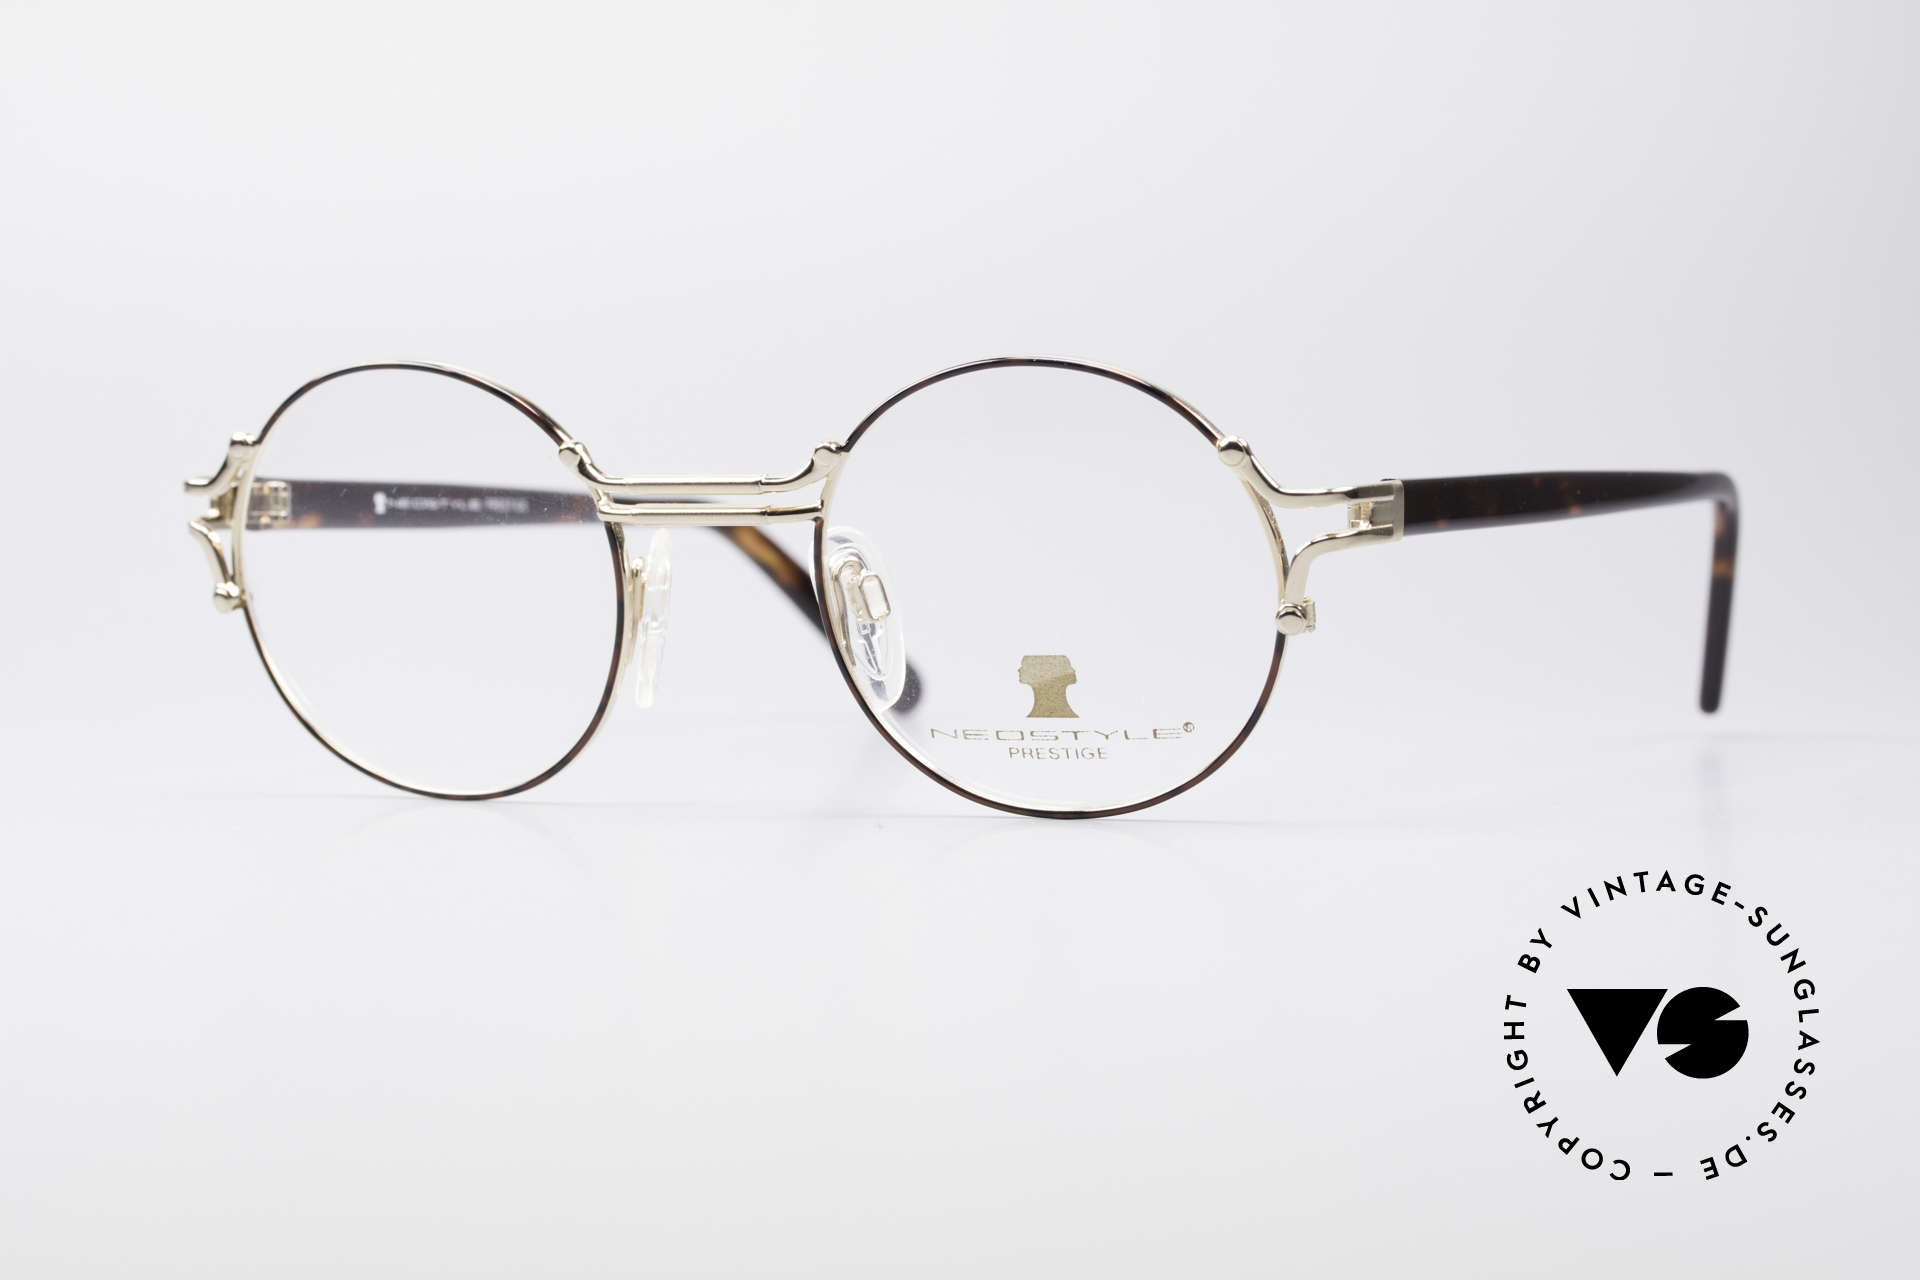 Neostyle Academic 8 Round Vintage Glasses 80's, Neostlye Academic 8 Prestige vintage glasses, Made for Men and Women